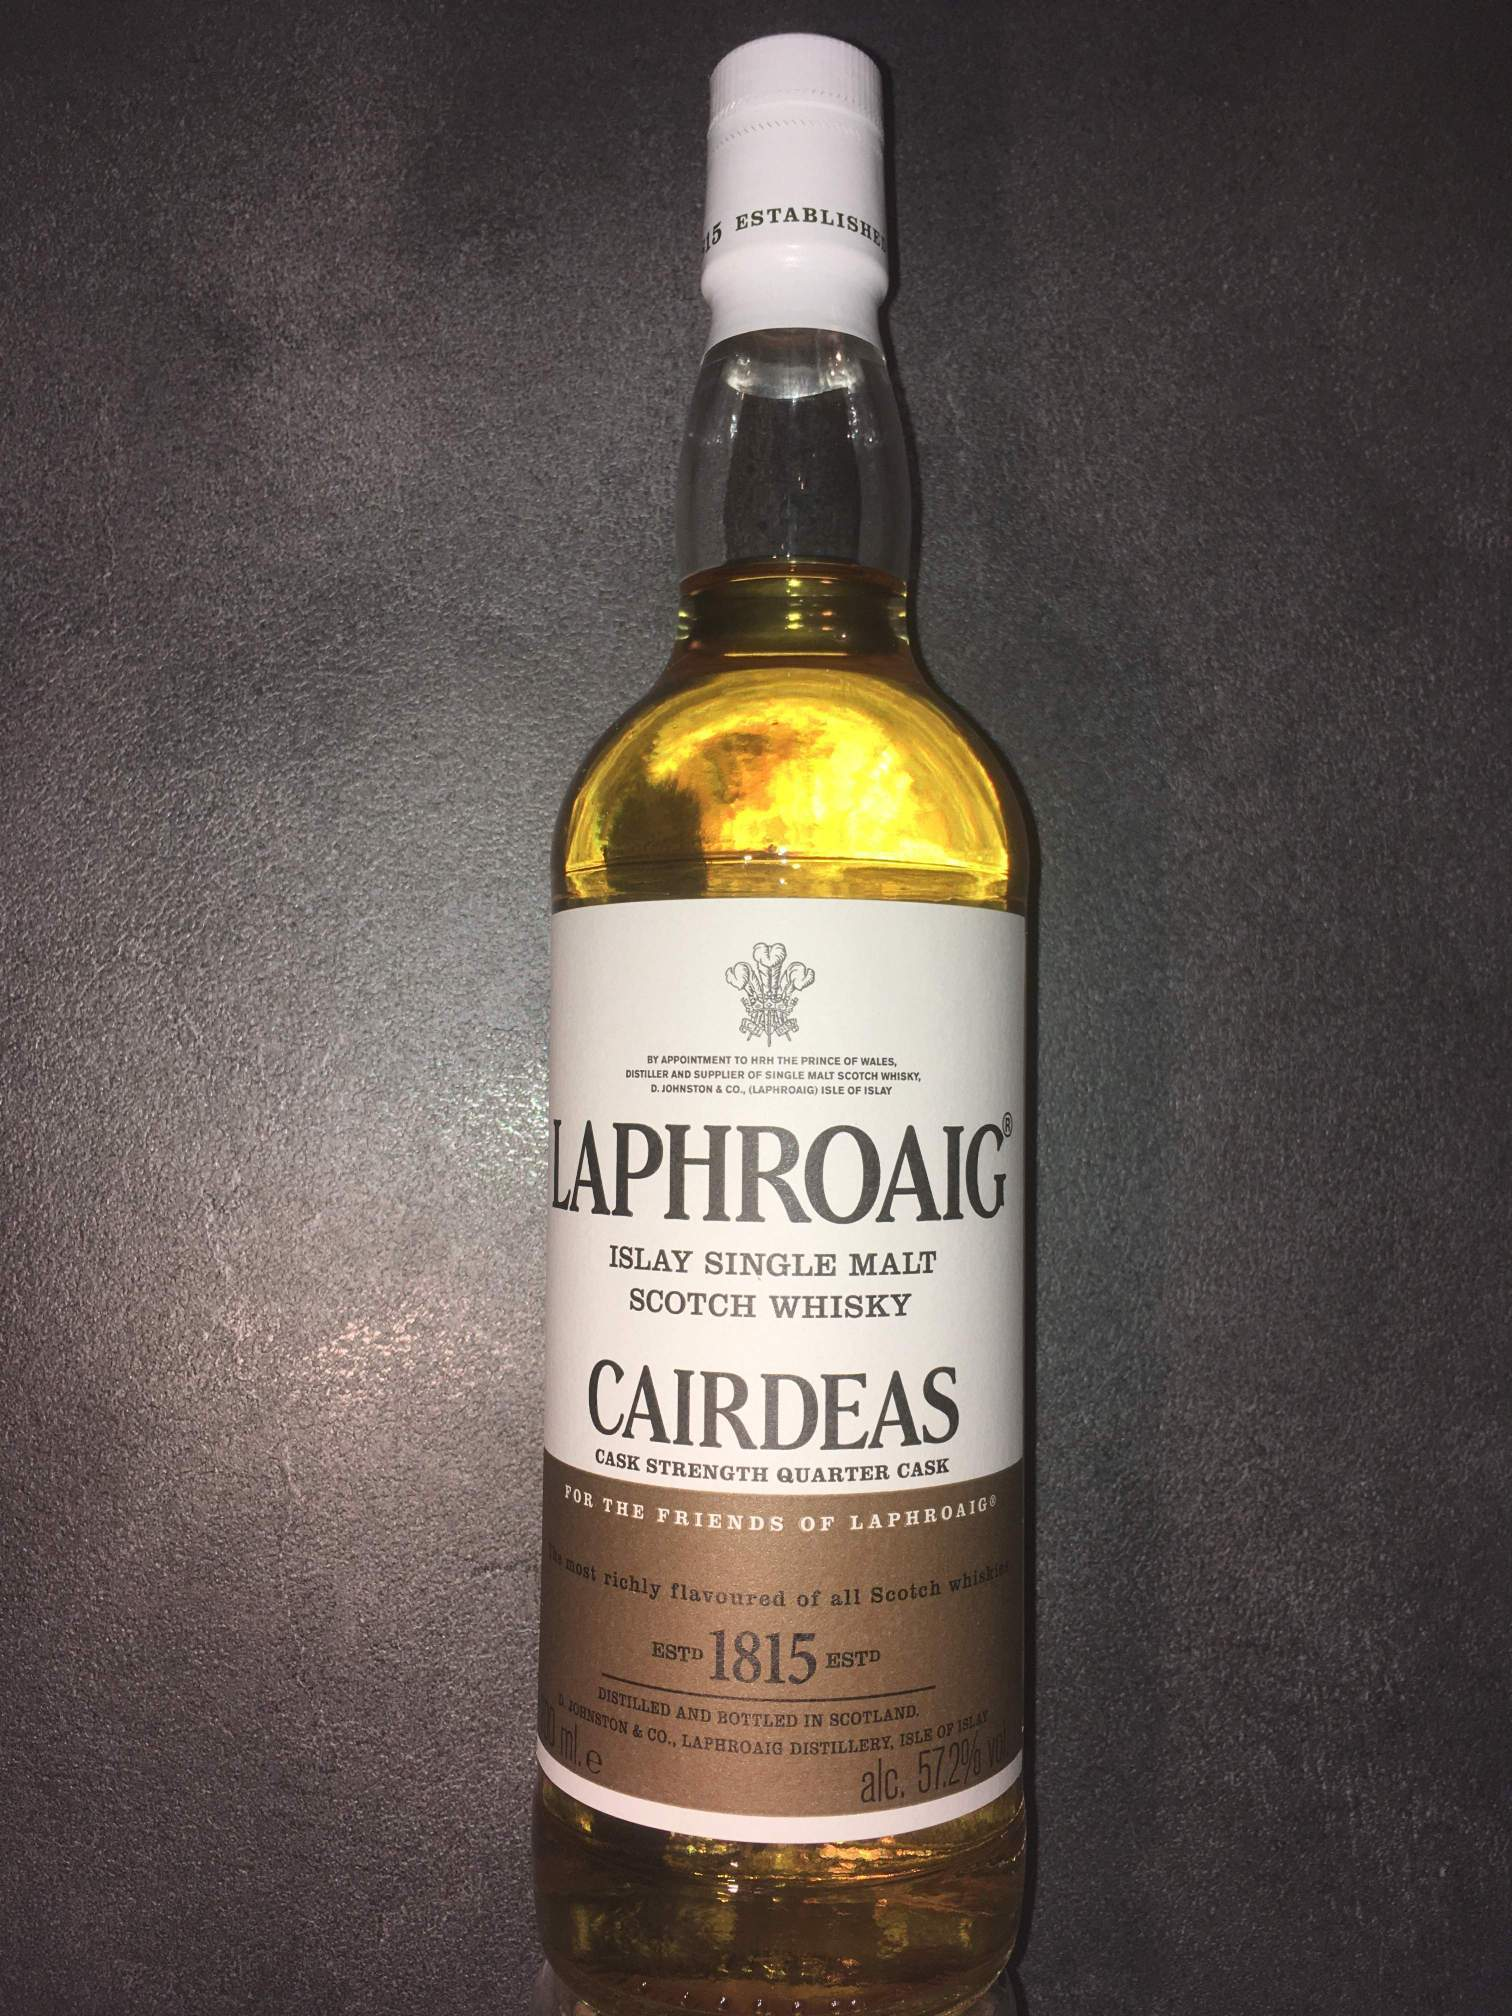 Laphroaig Cairdeas 2017 - Feis Ile 2017 - Quarter Cask - UK-Bottling